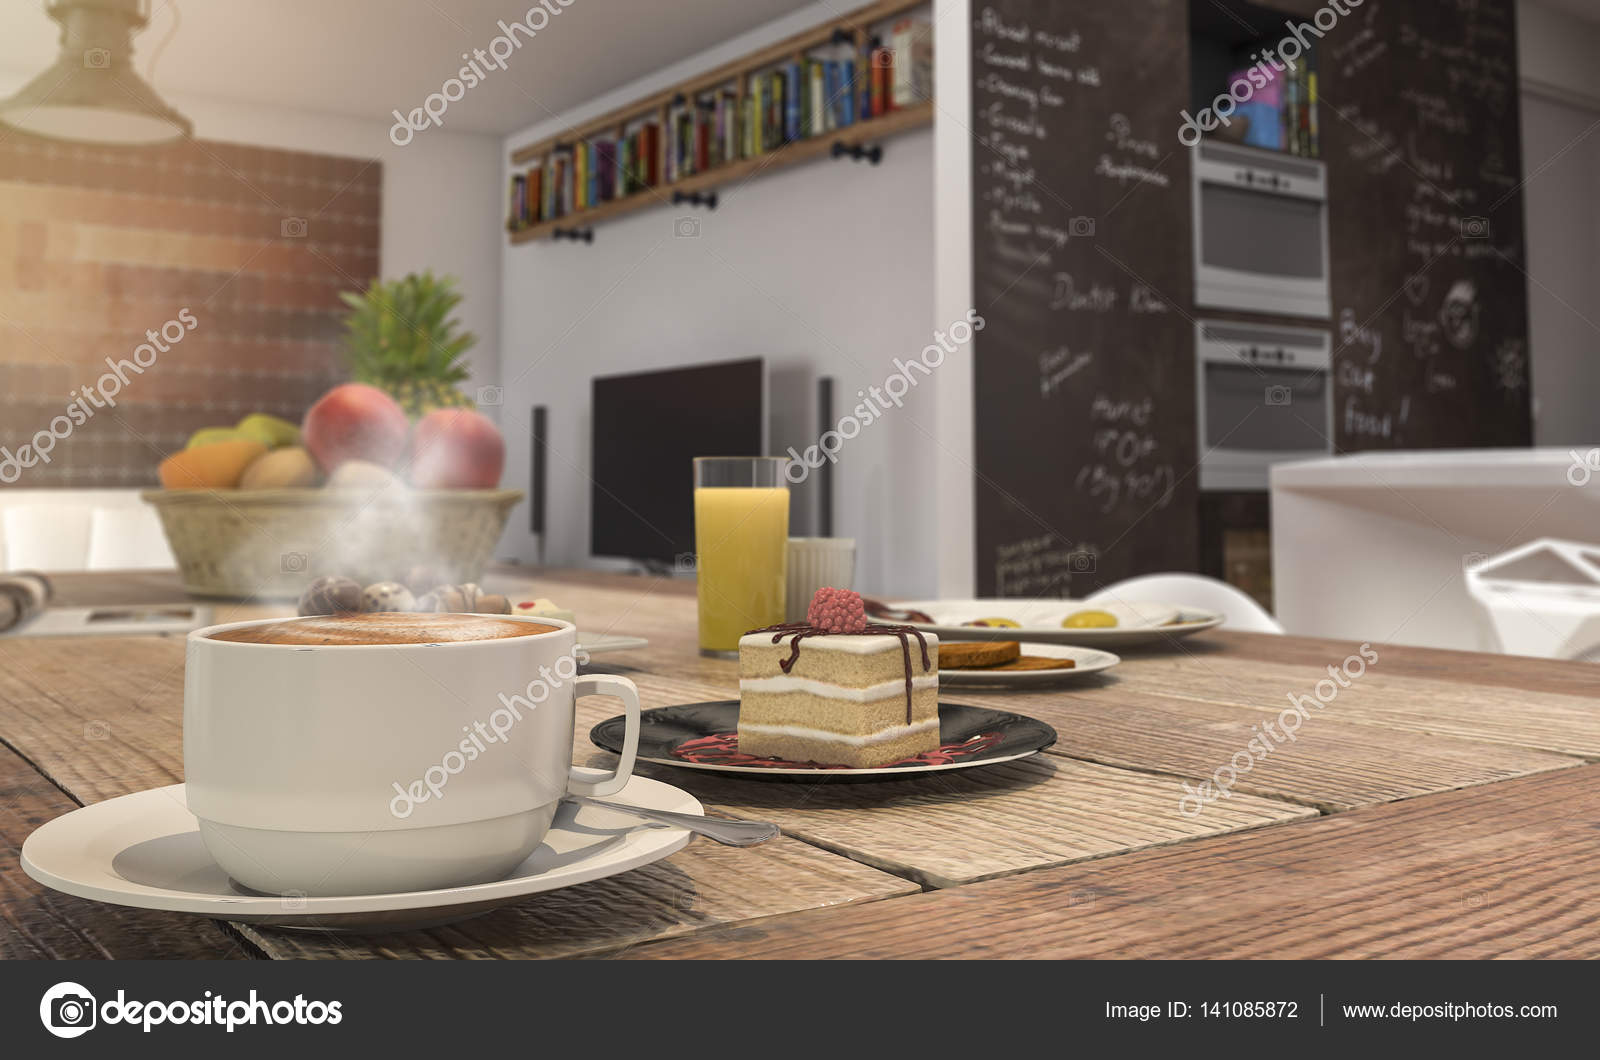 D Rendering Depth Of Field Nice Coffee Set And Cake On Wooden Table - Coffee table depth